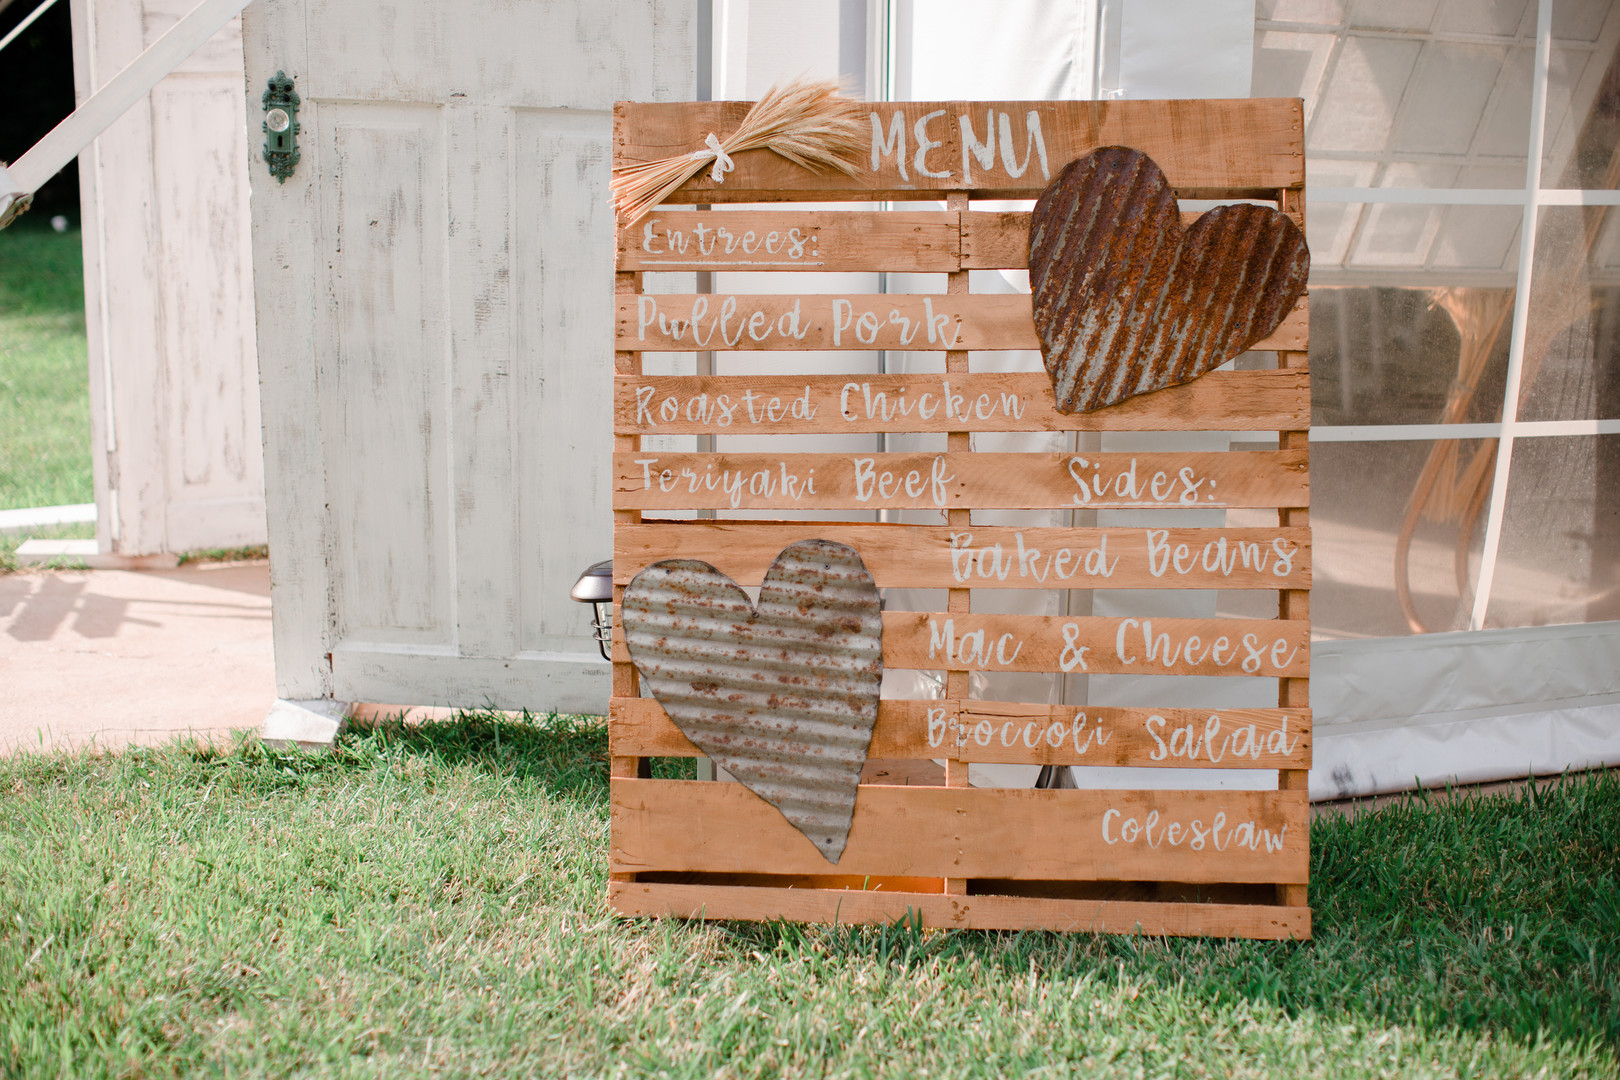 Wooden wedding menu sign: Rustic country wedding in Minooka, IL captured by Katie Brsan Photography. Visit CHItheeWED.com for more wedding inspiration!